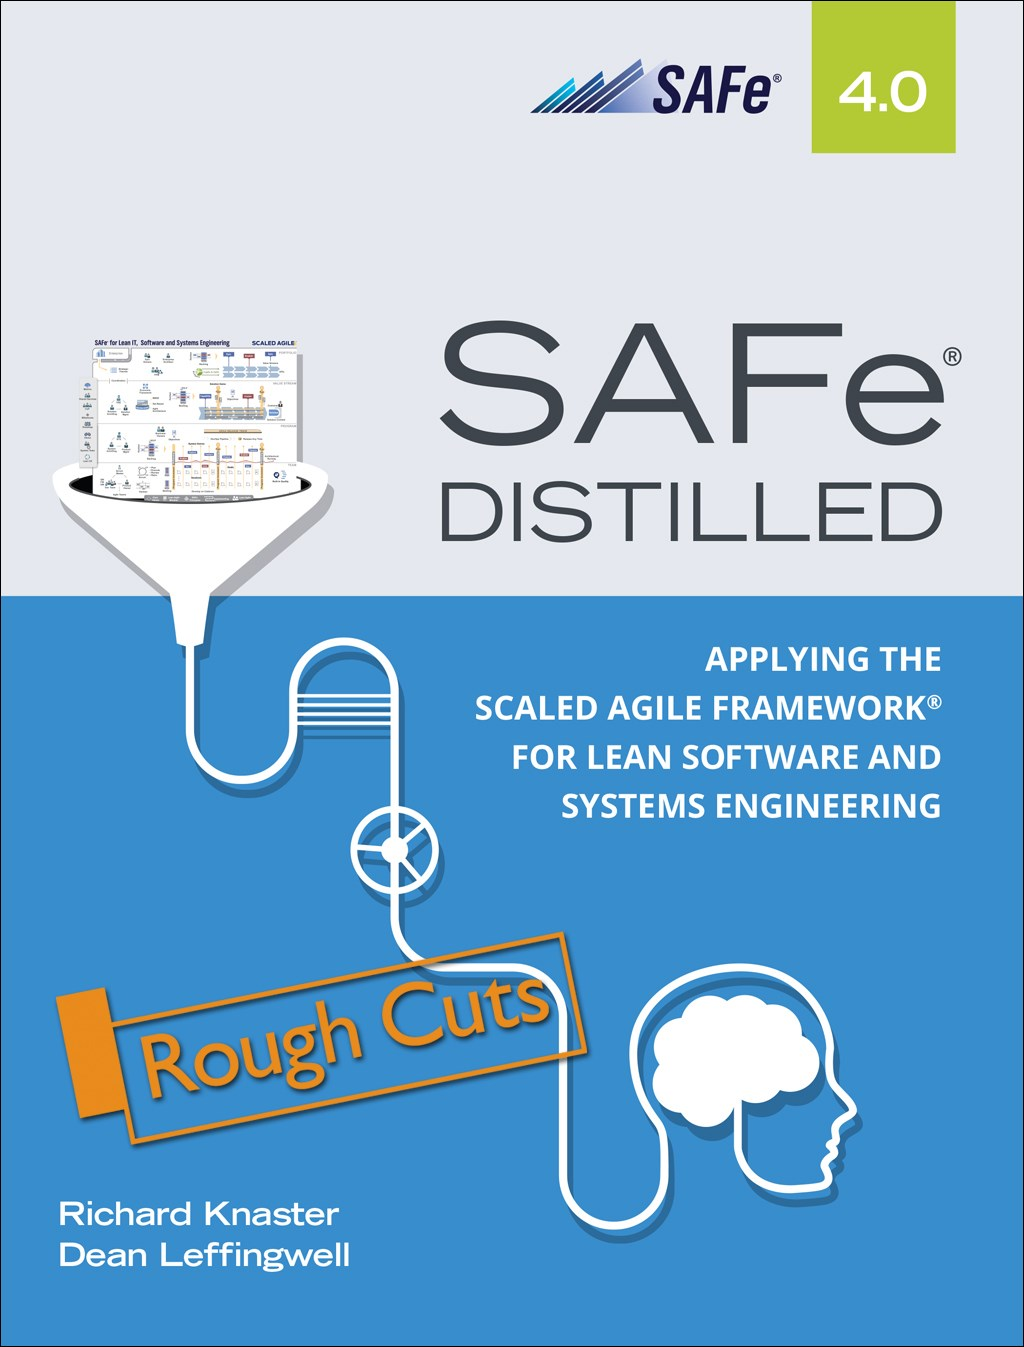 SAFe 4.0 Distilled: Applying the Scaled Agile Framework for Lean Software and Systems Engineering, Rough Cuts